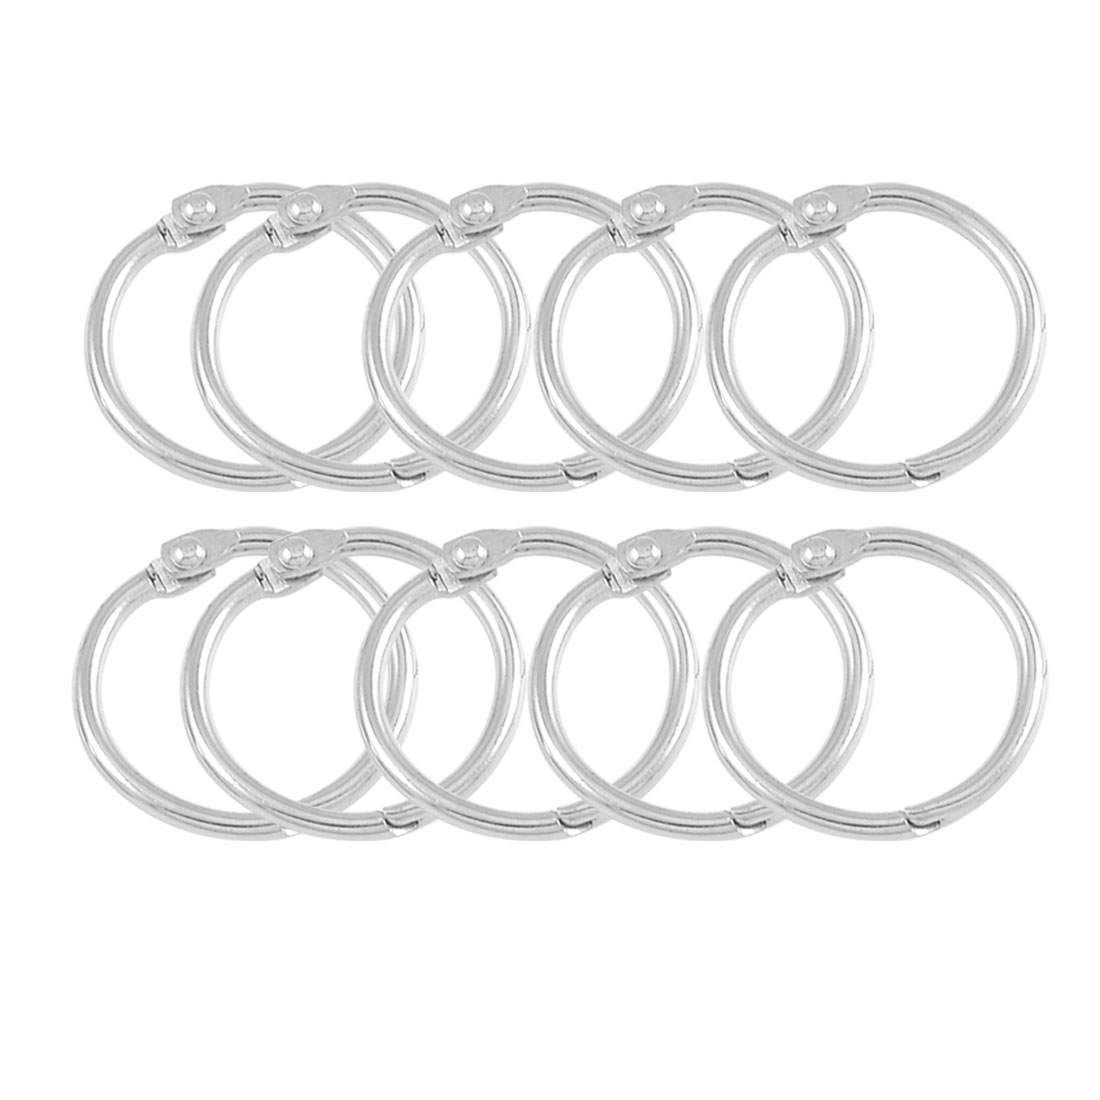 "10 x Silver Tone Metal 1.2"" Loose Leaf Bundle Book Rings Keychains"